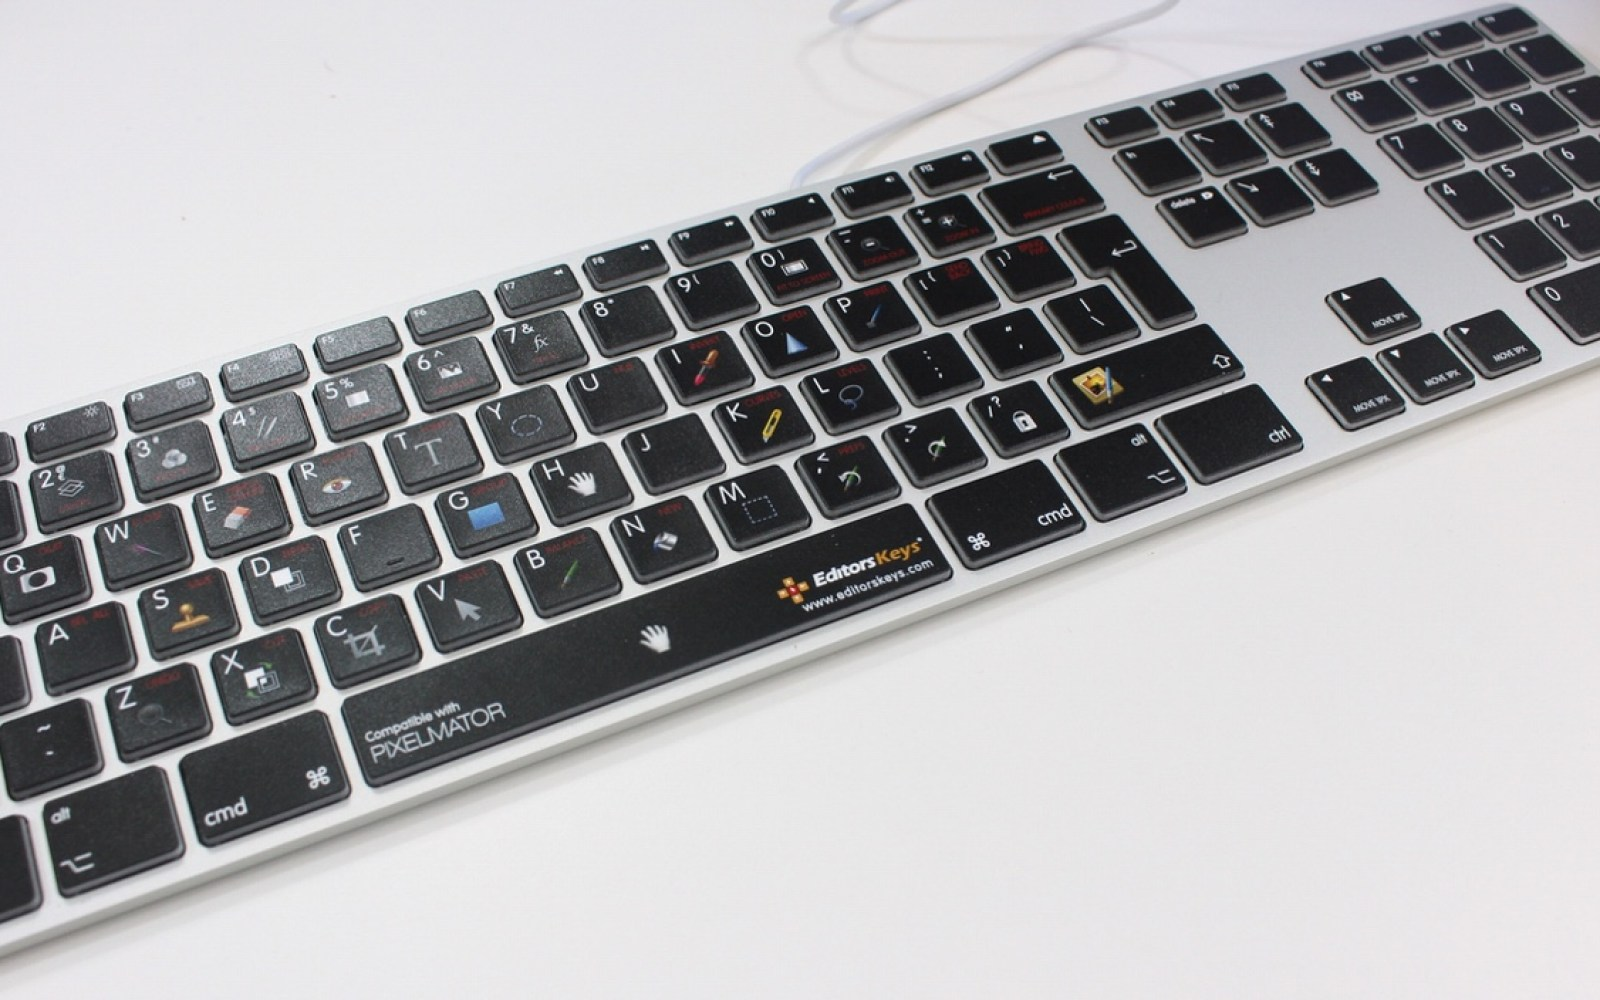 Pixelmator keyboard by Editors Keys review: A no-brainer for Pixelmator users